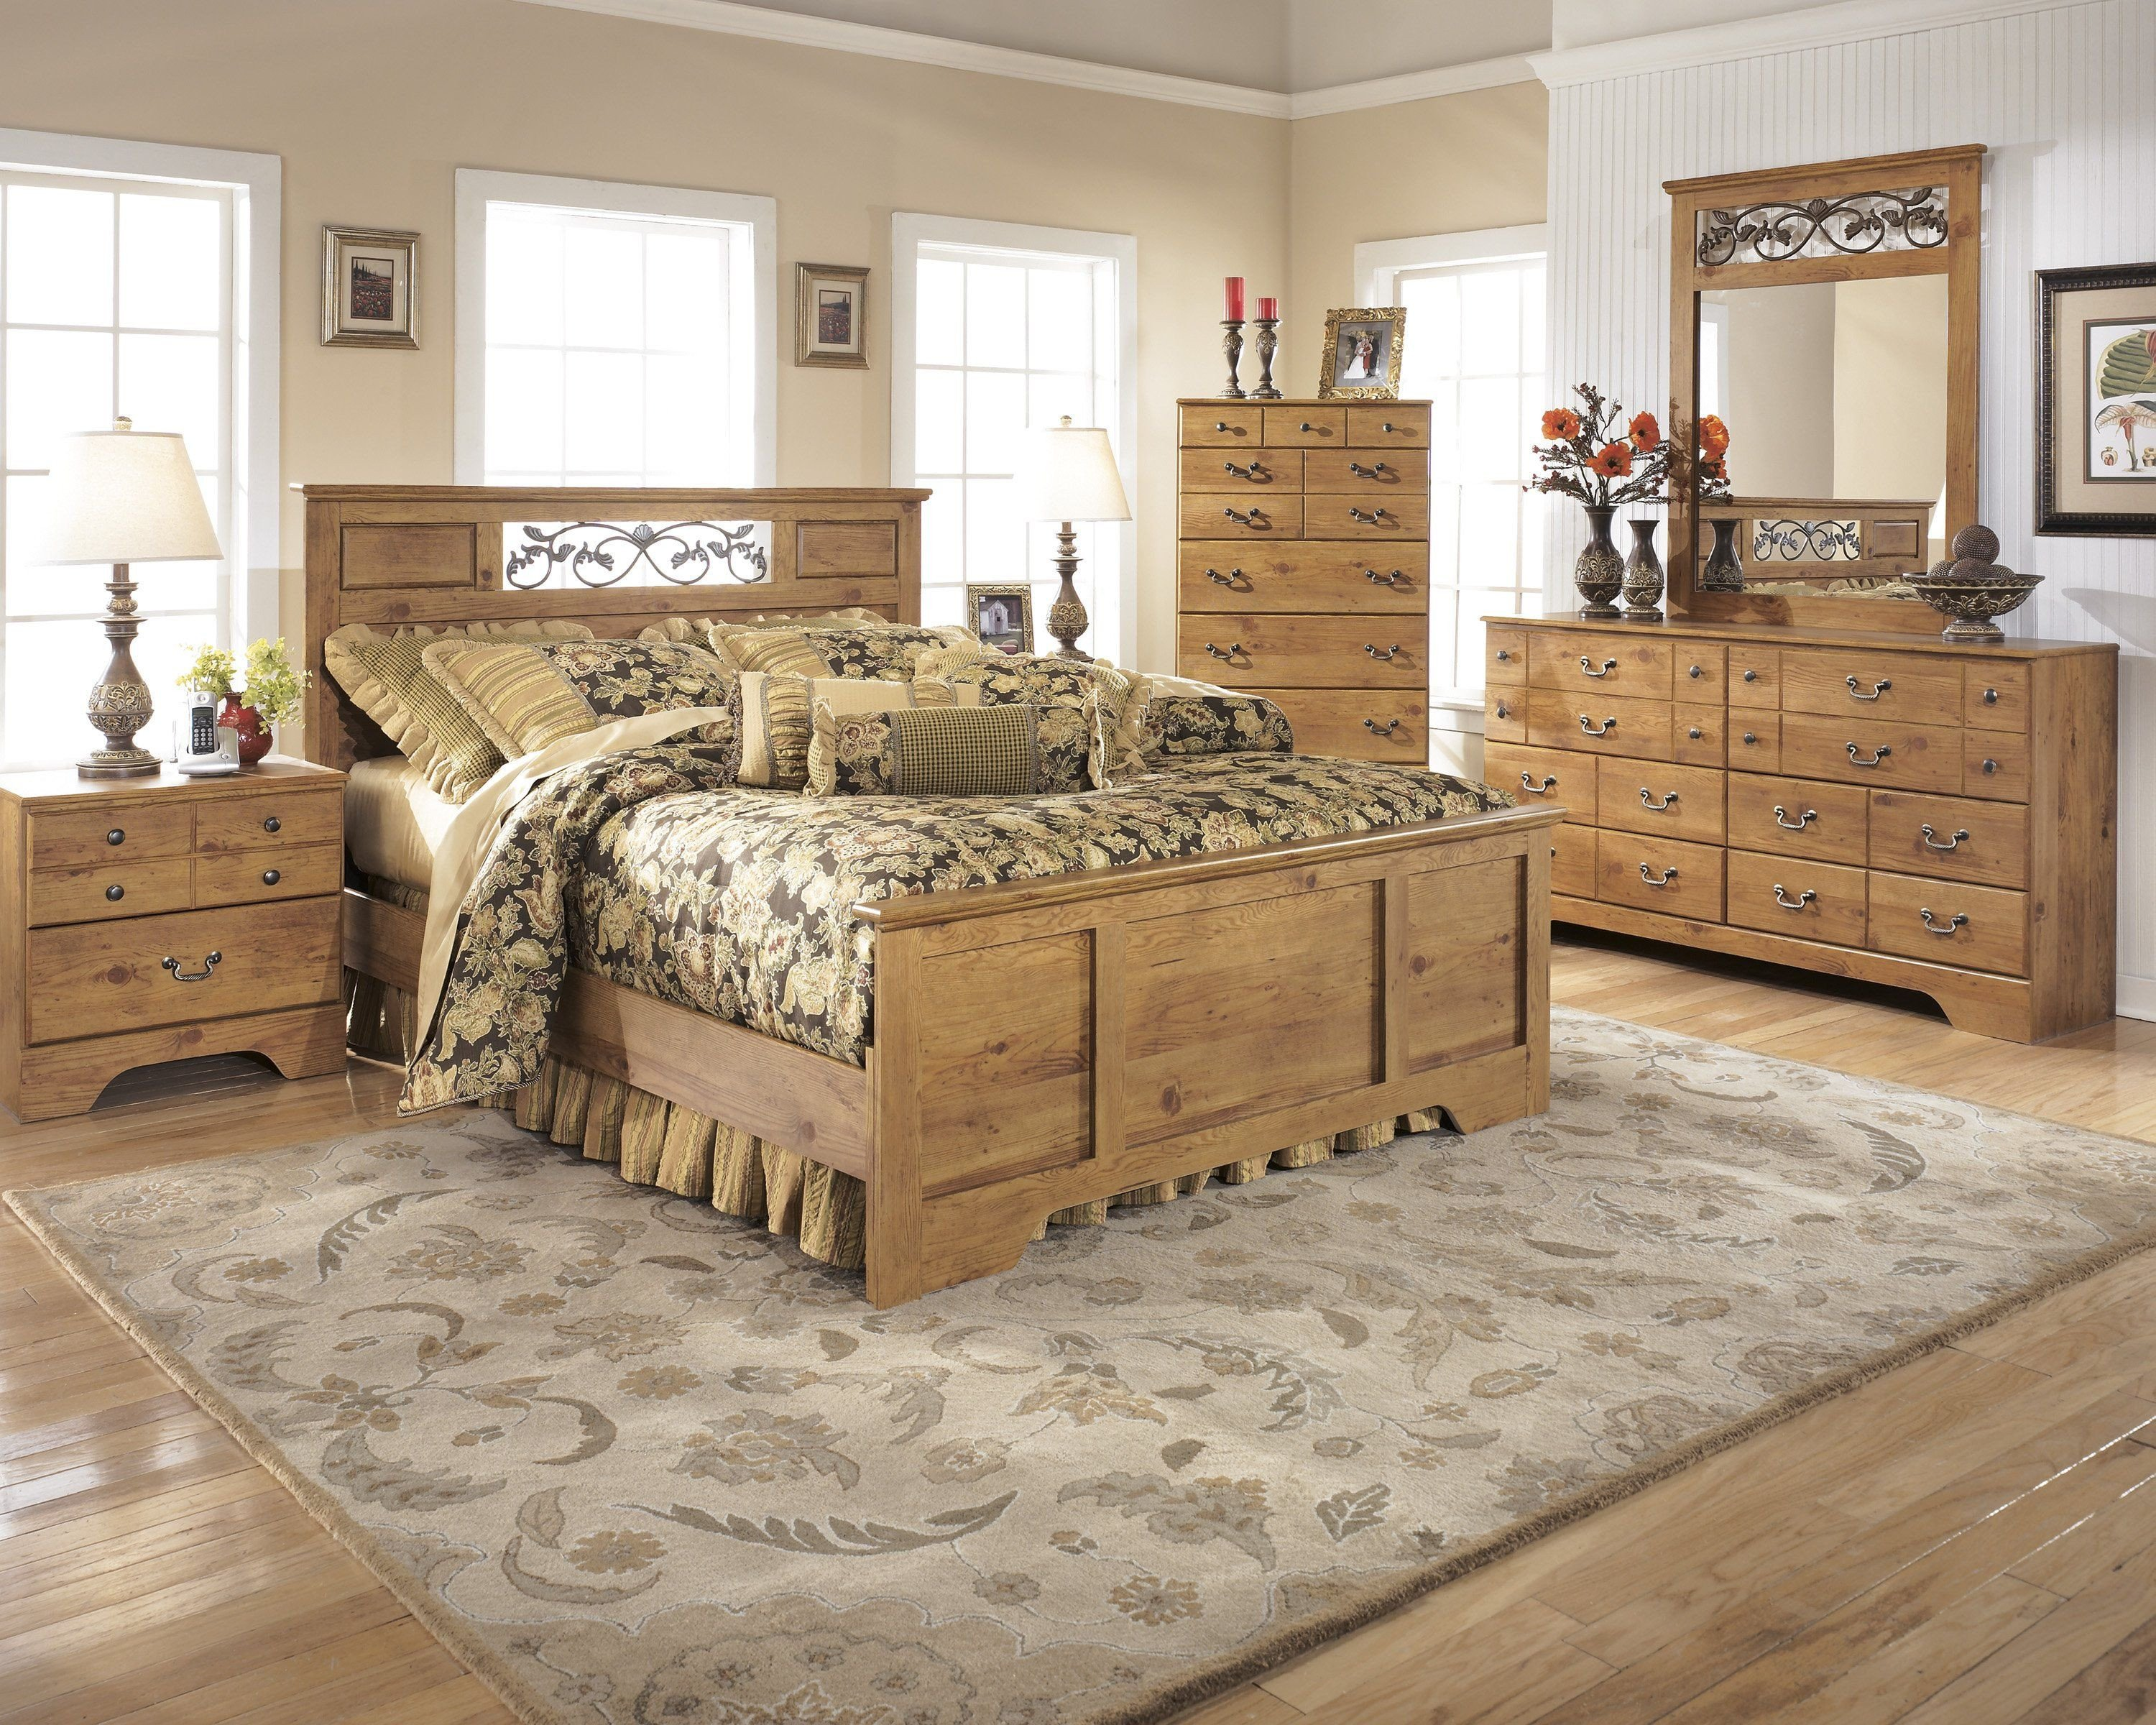 Ashley Millennium Bedroom Set Elegant Signature Design by ashley Bittersweet 4 Piece Queen Panel